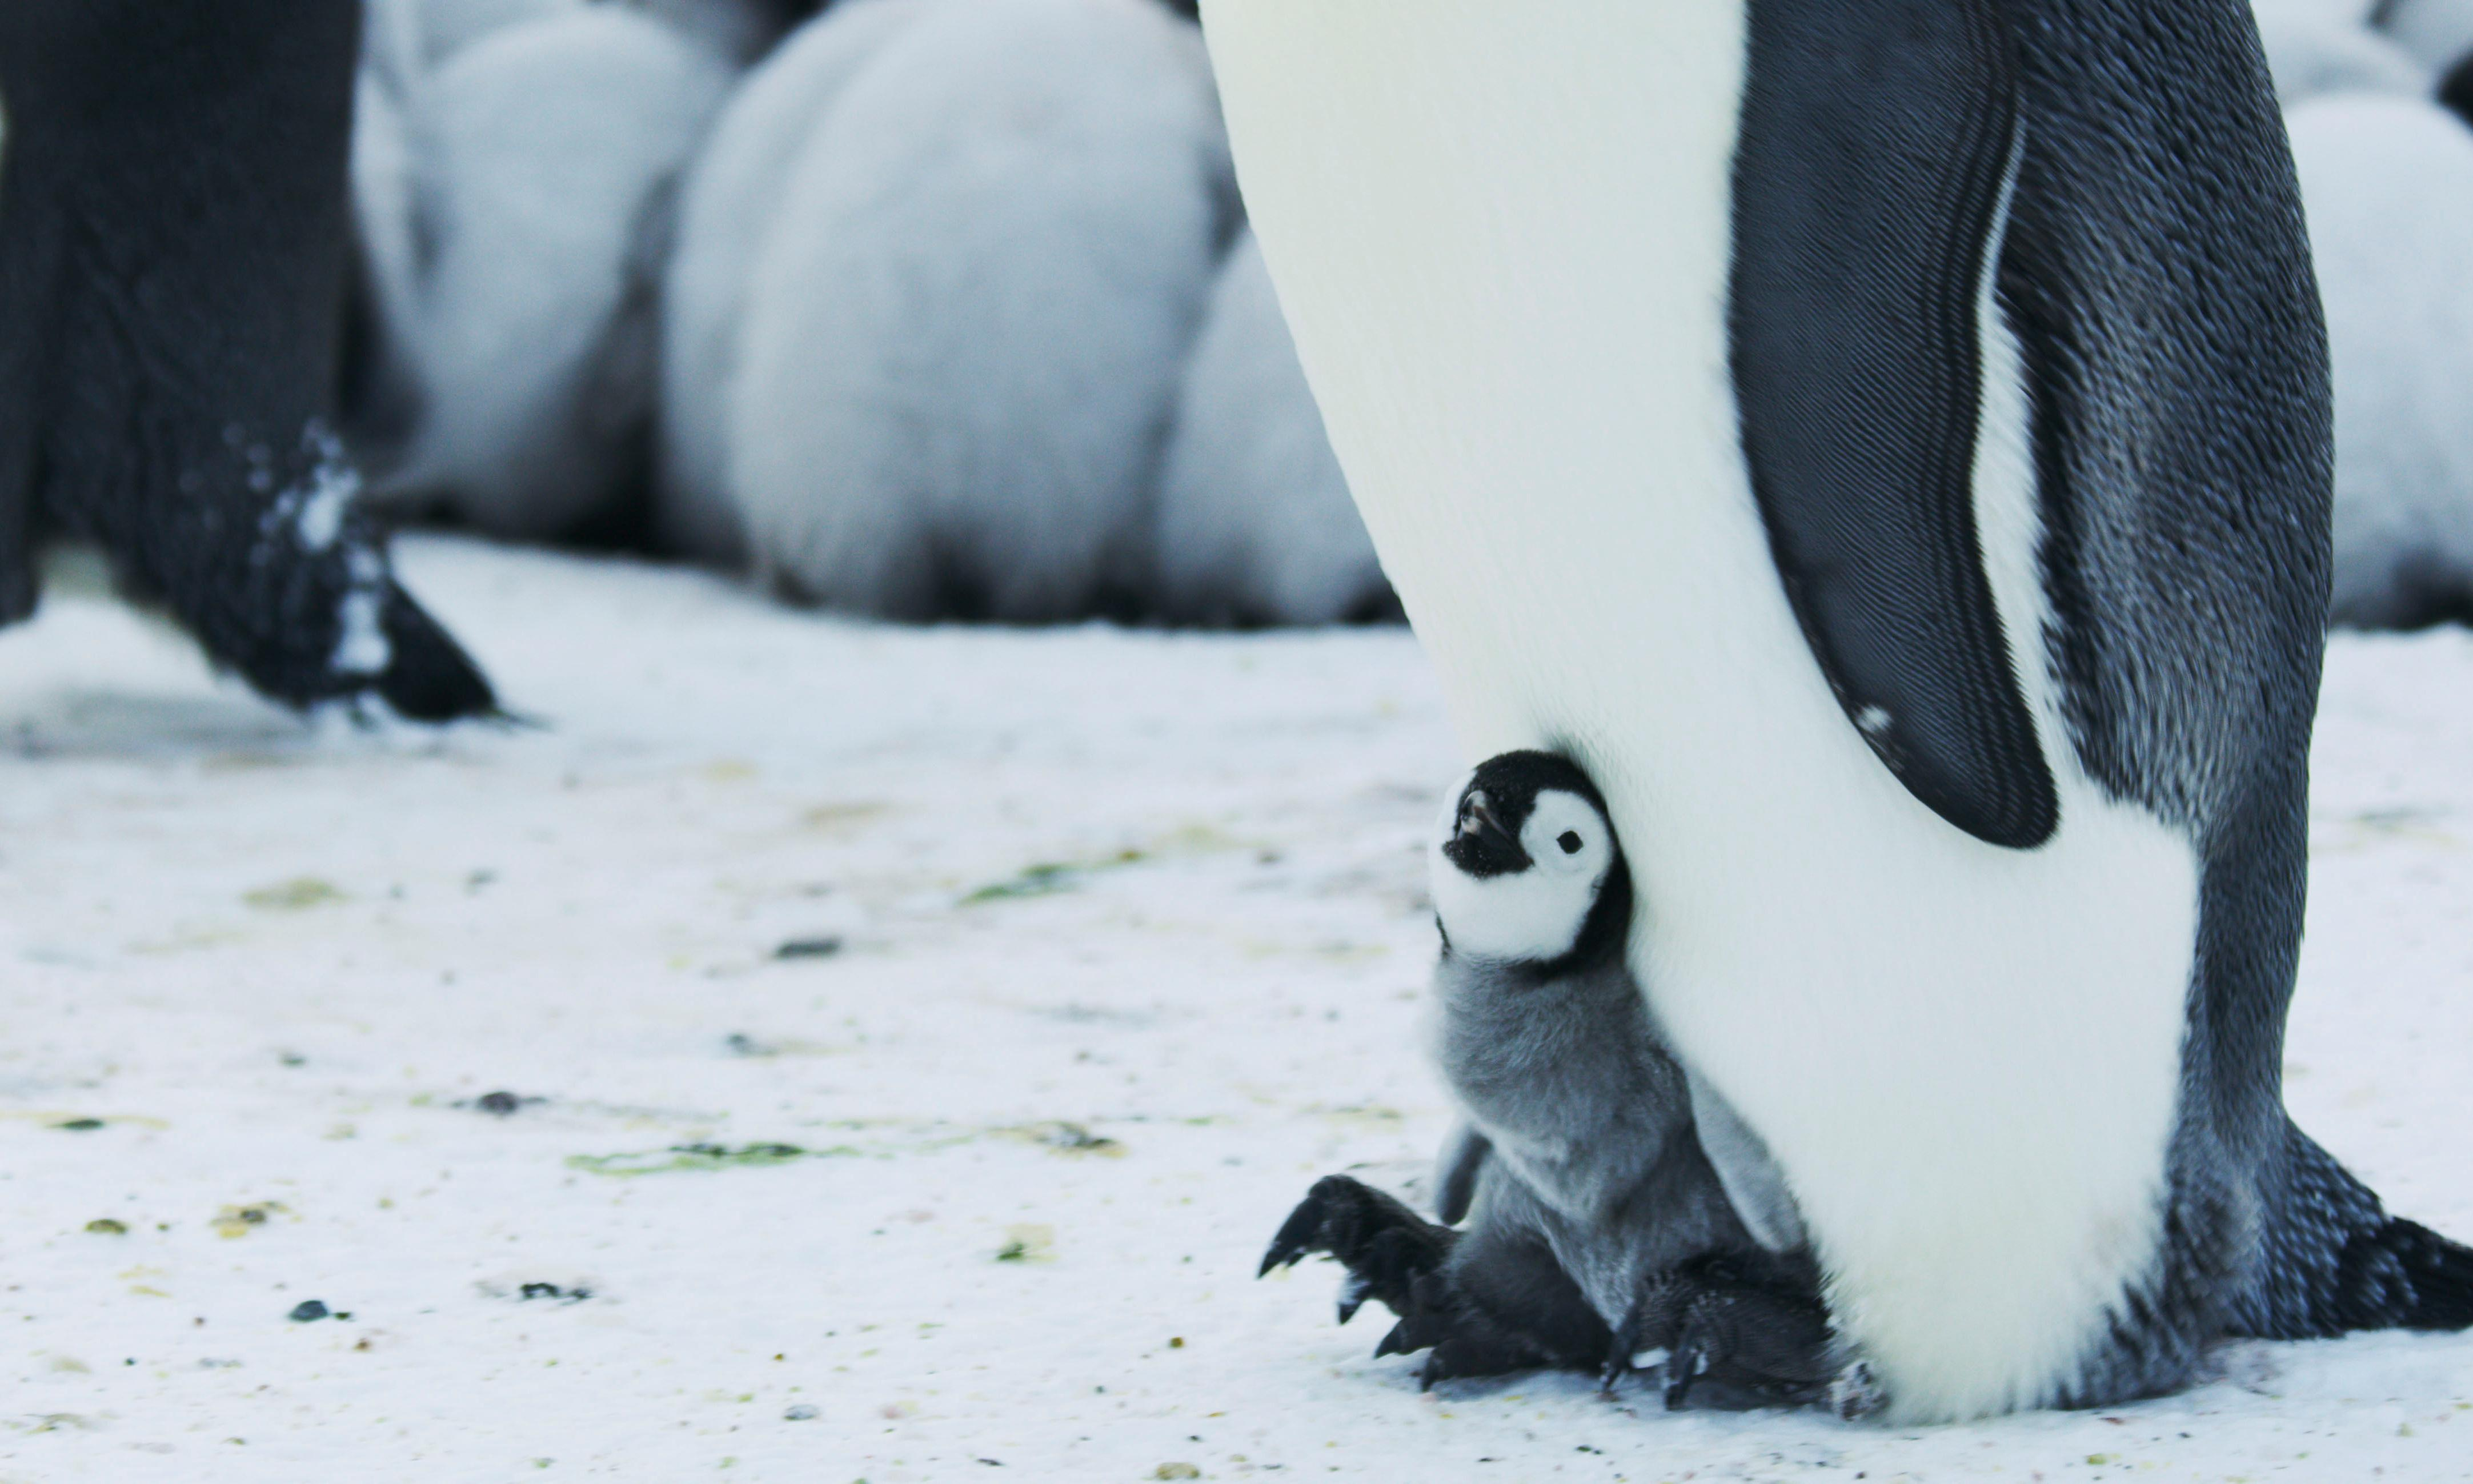 TV tonight: a breathtaking view of our planet, penguin poo and all